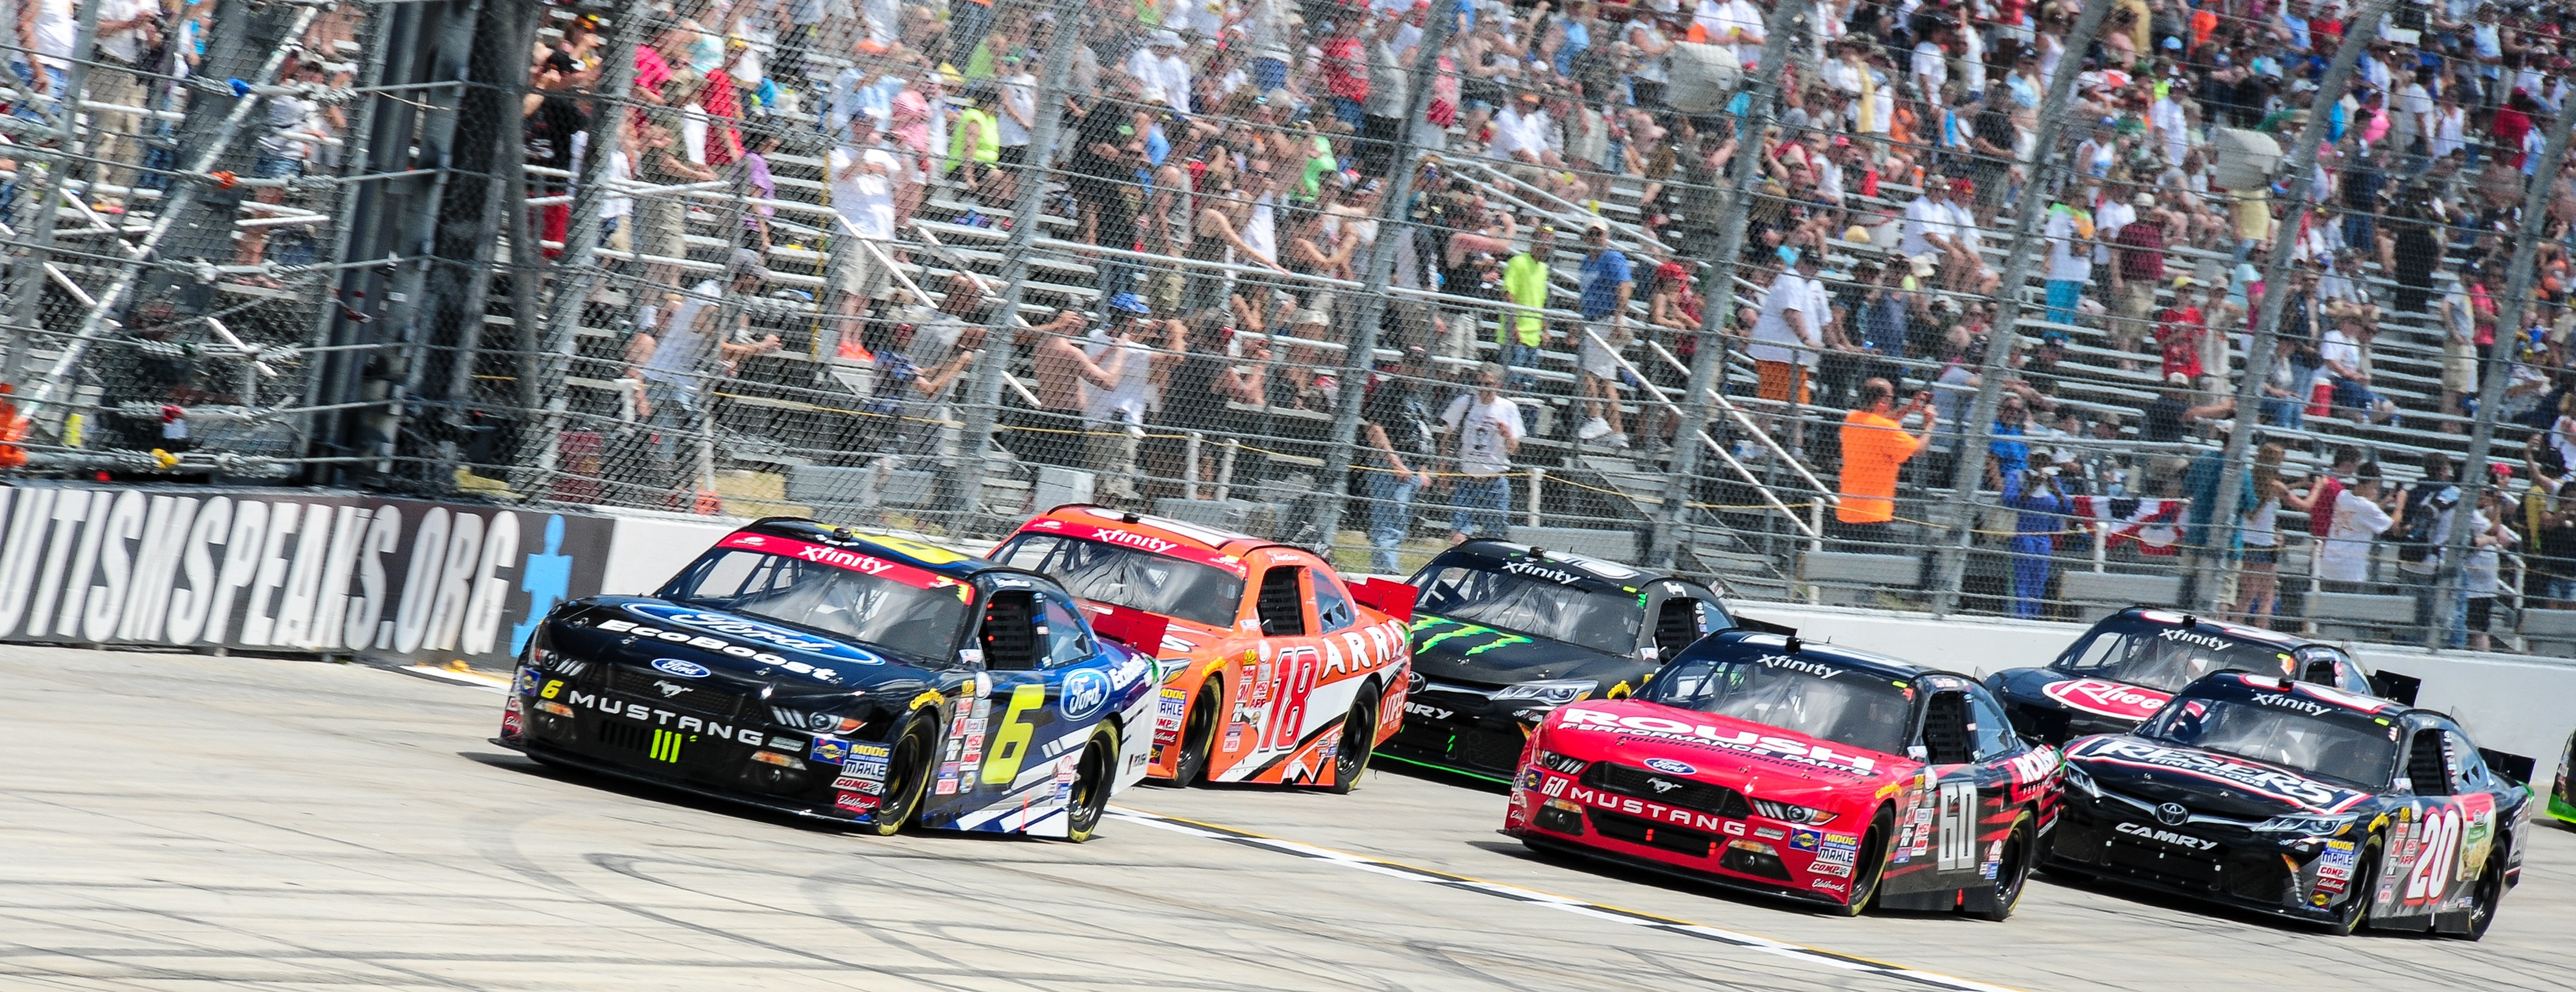 Add Fun to your Family Filled Weekend to attend the Nascar AAA 400